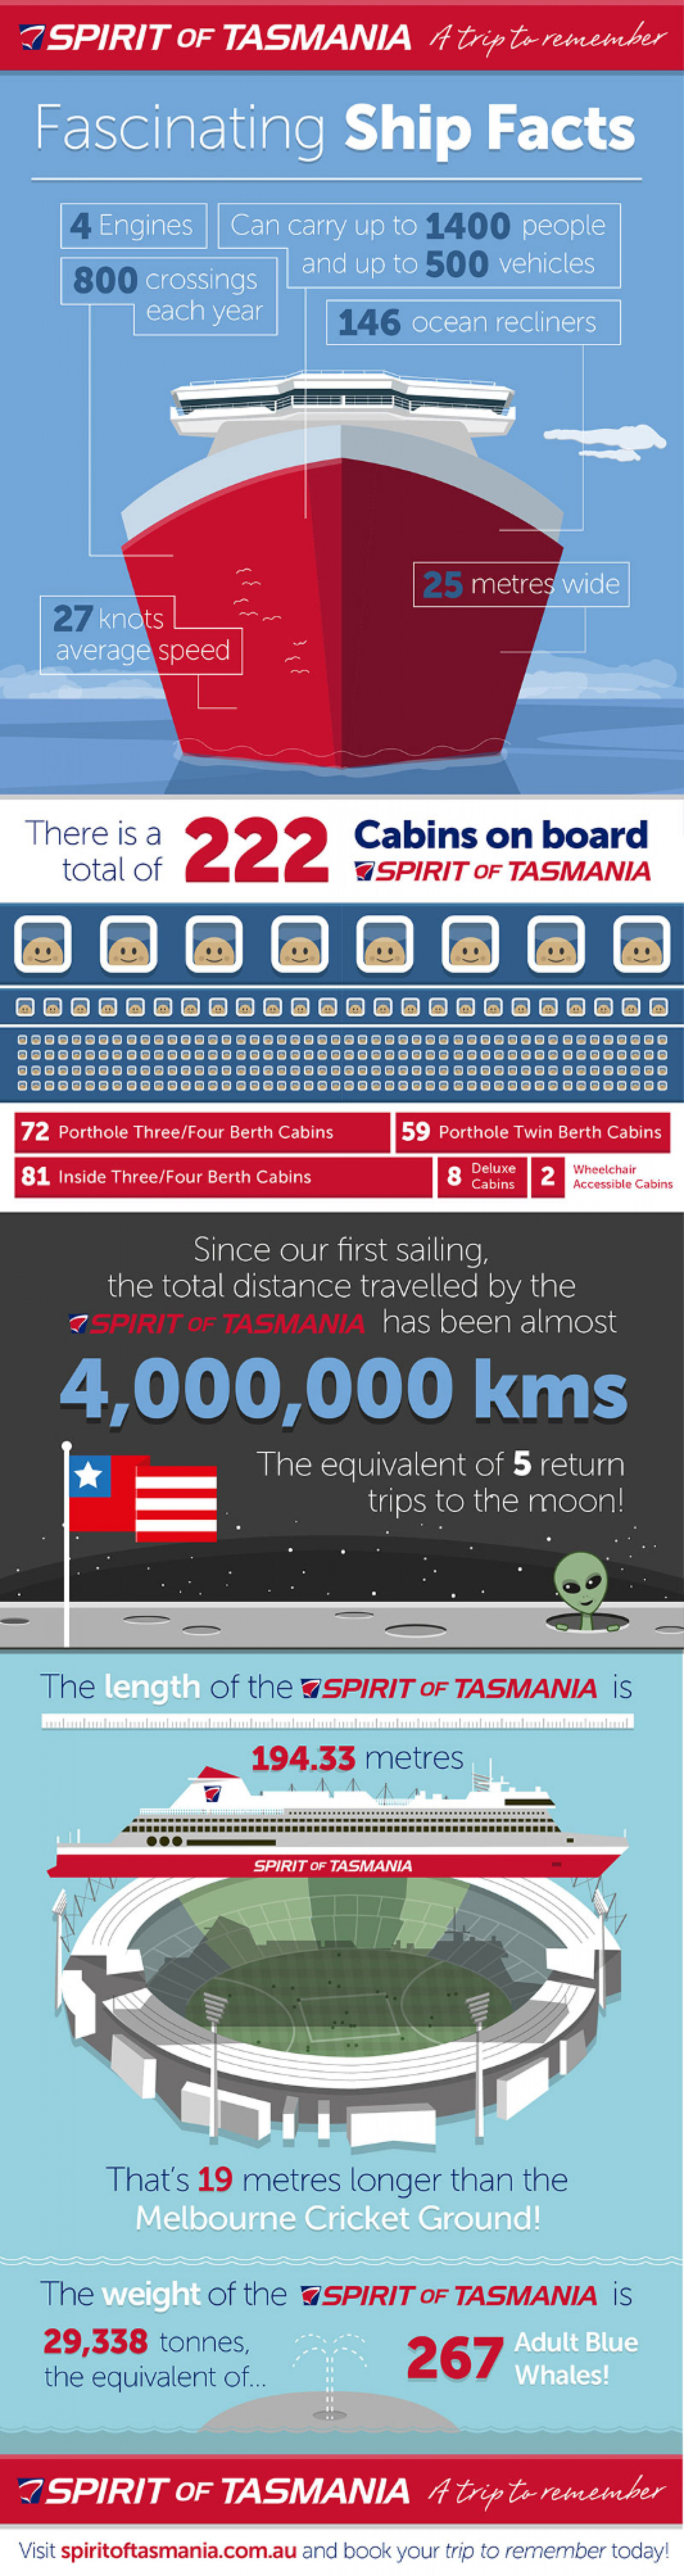 Fascinating Ship Facts Infographic